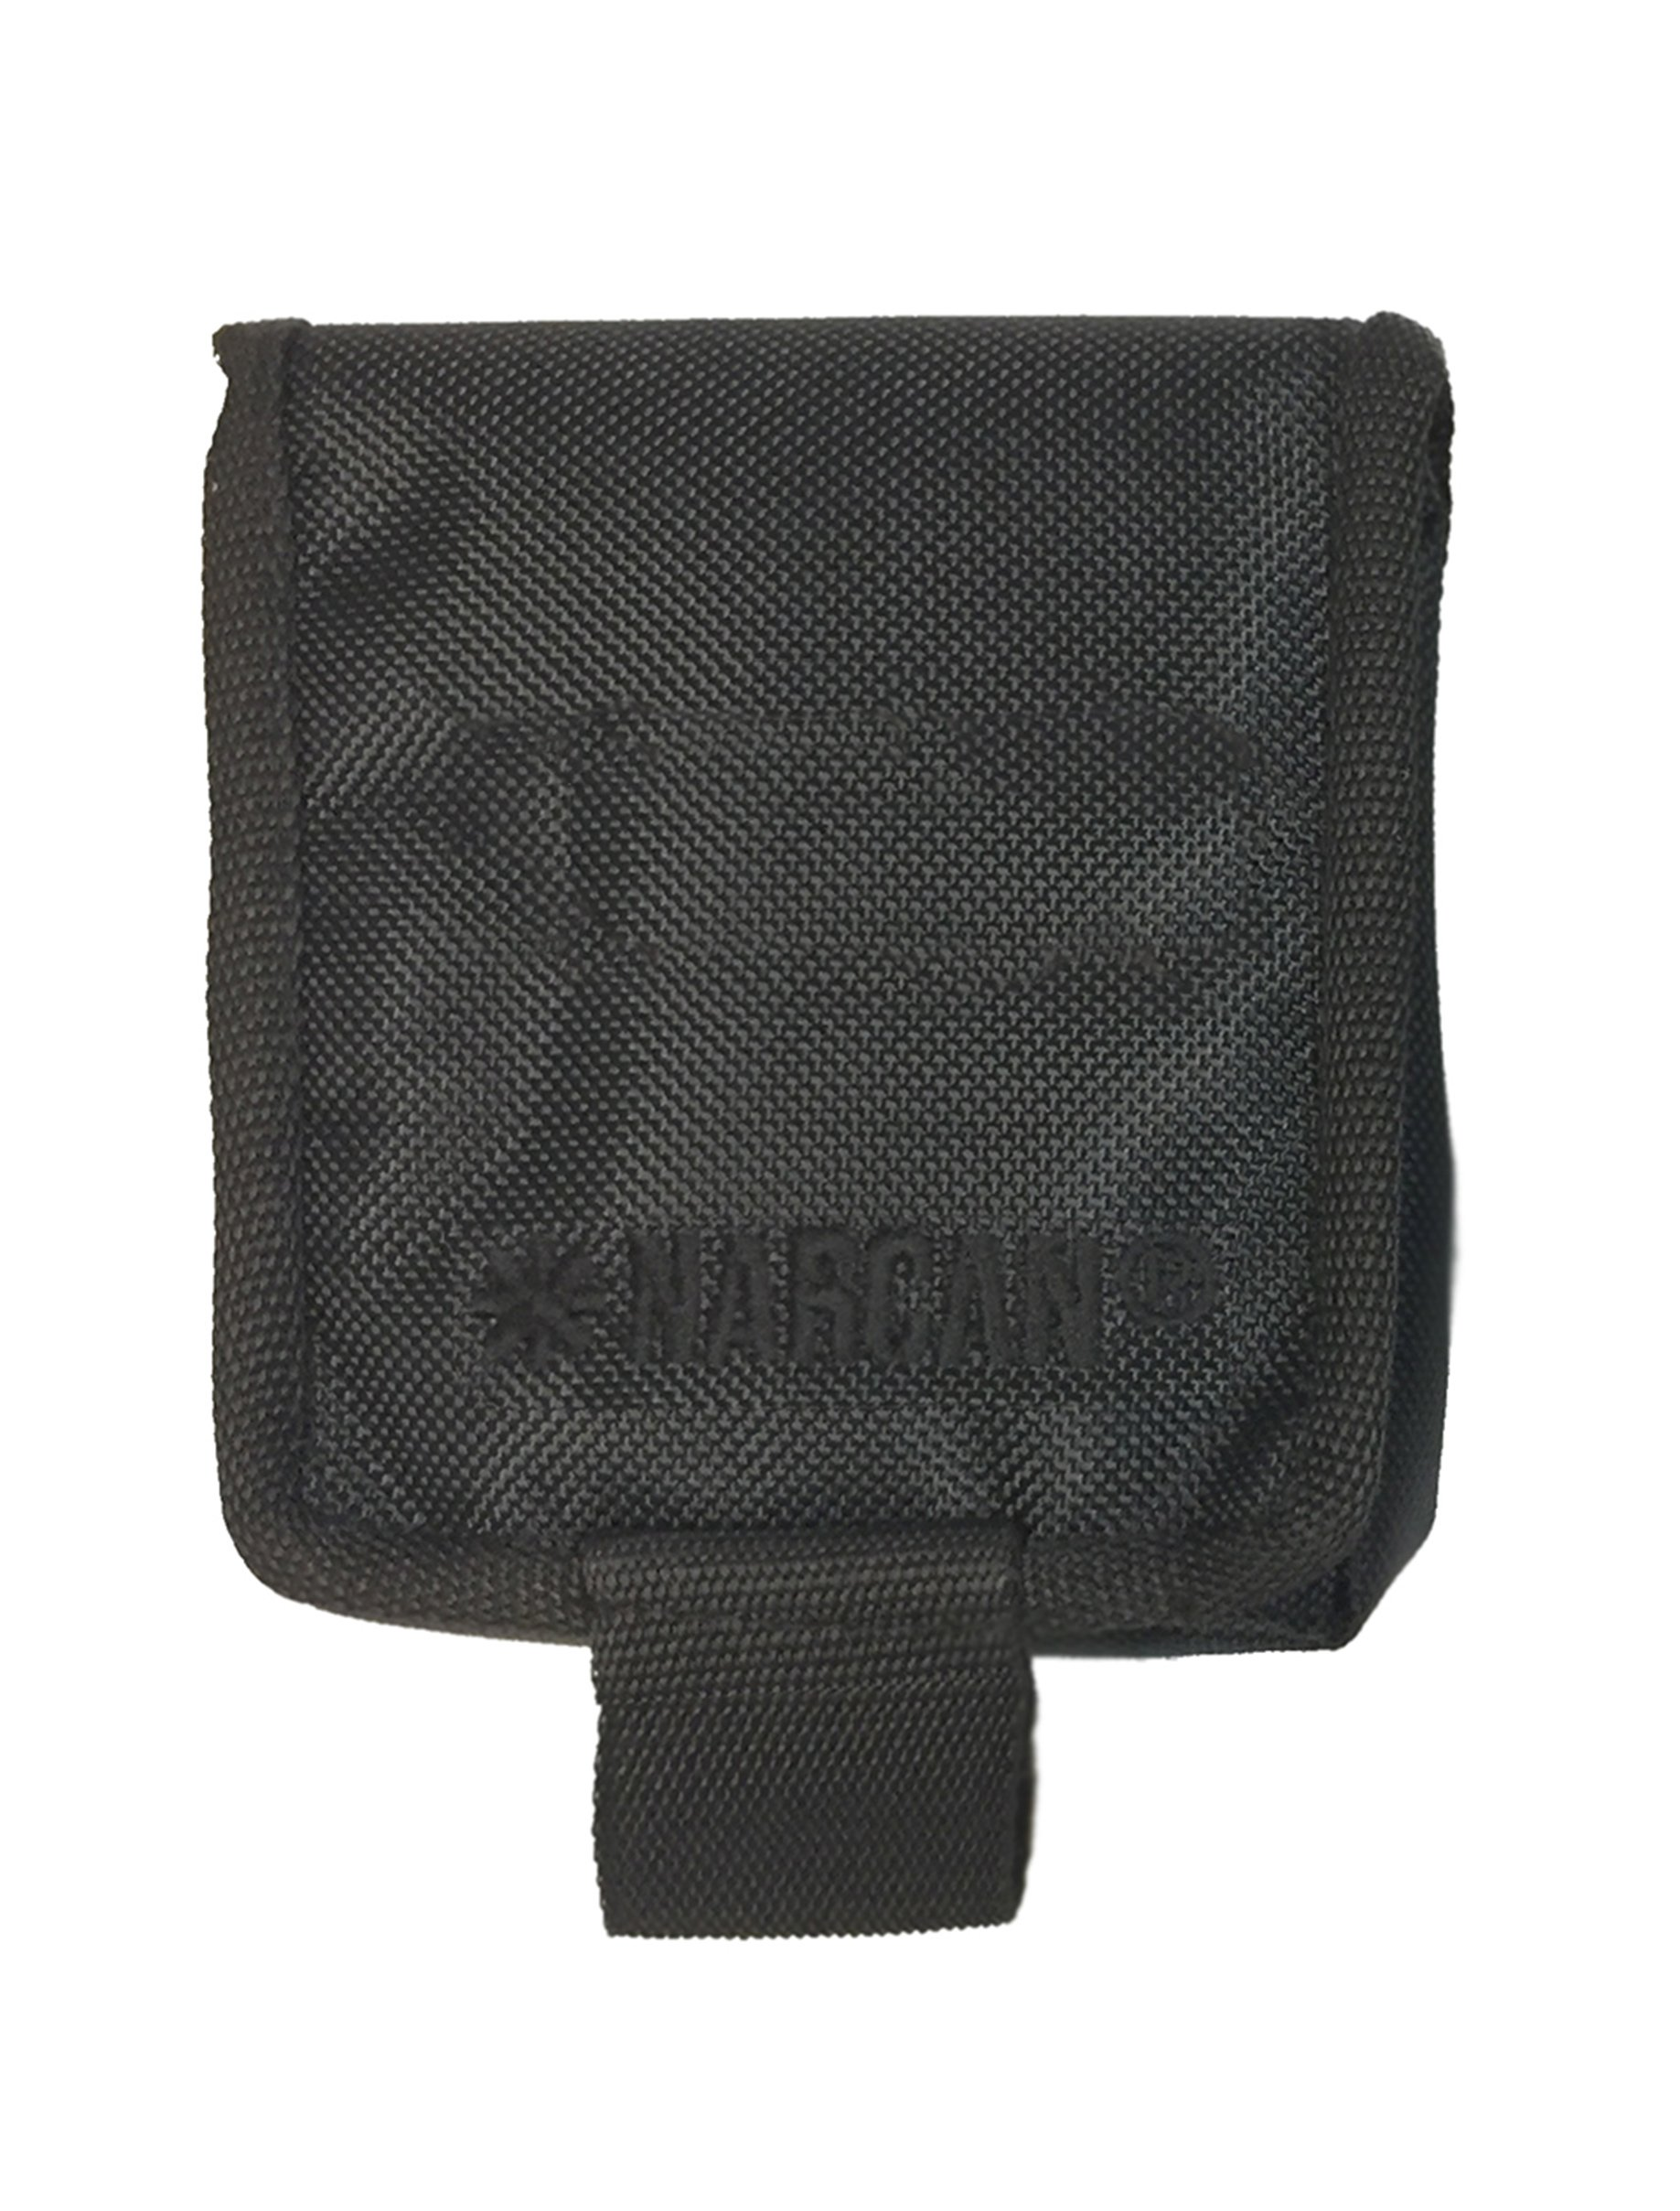 Amazon.com: Narcan Compact molle carry pouch: Health